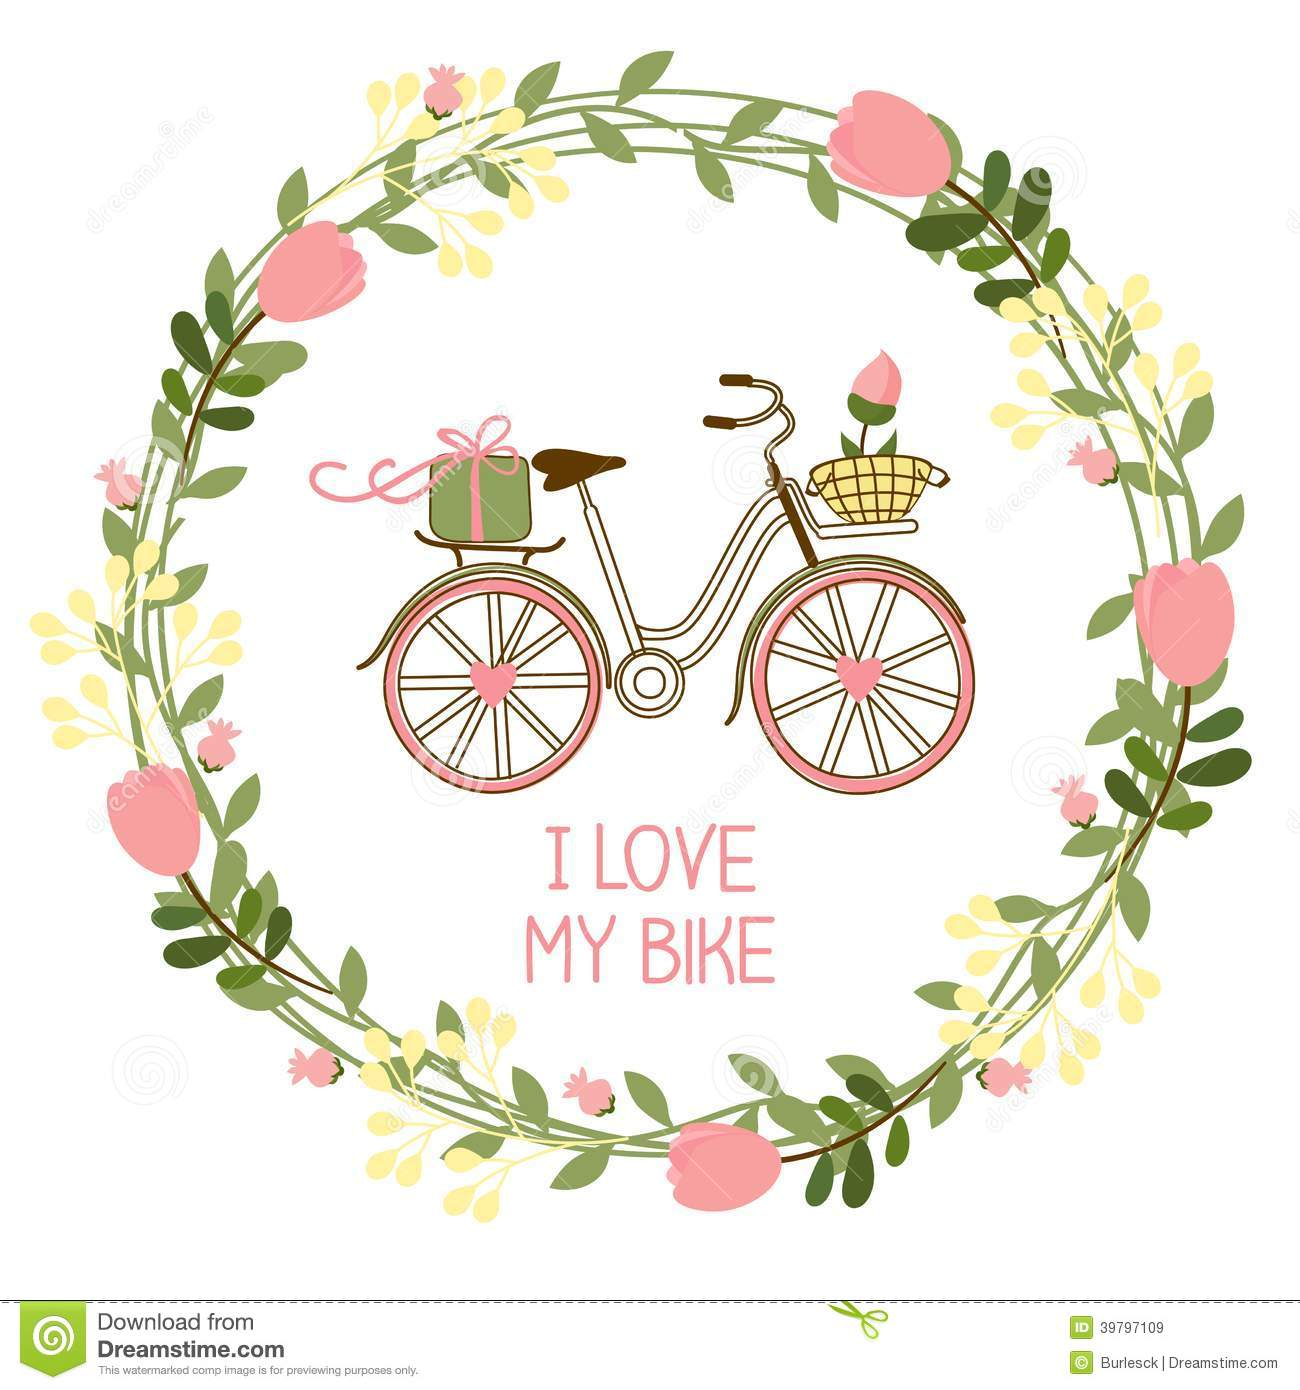 floral wreath and bike stock vector illustration of garden 39797109. Black Bedroom Furniture Sets. Home Design Ideas